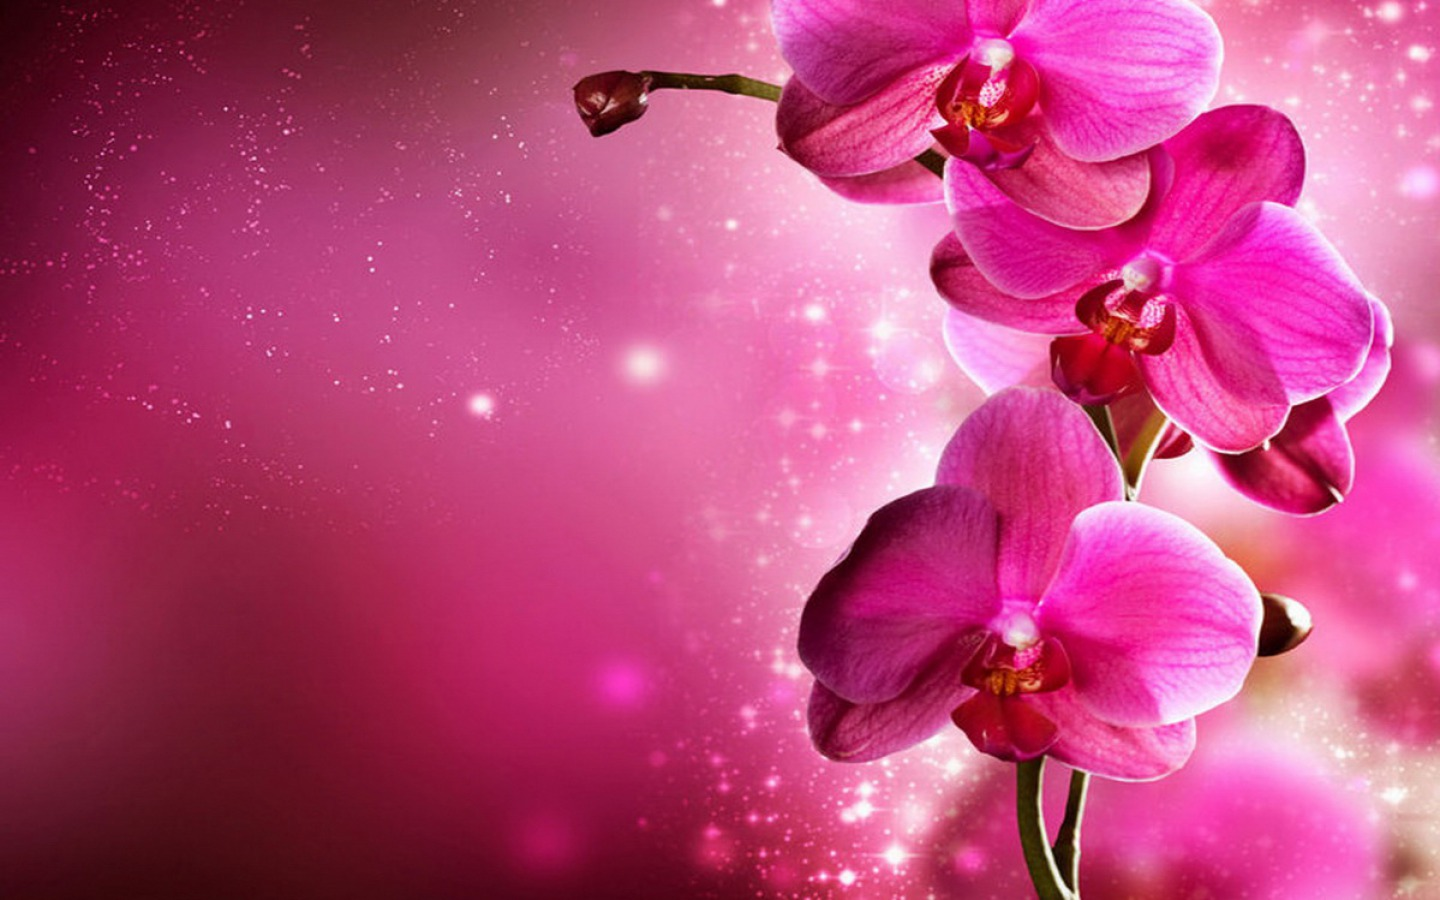 Flowers images orchid hd wallpaper and background photos 34014998 flowers images orchid hd wallpaper and background photos izmirmasajfo